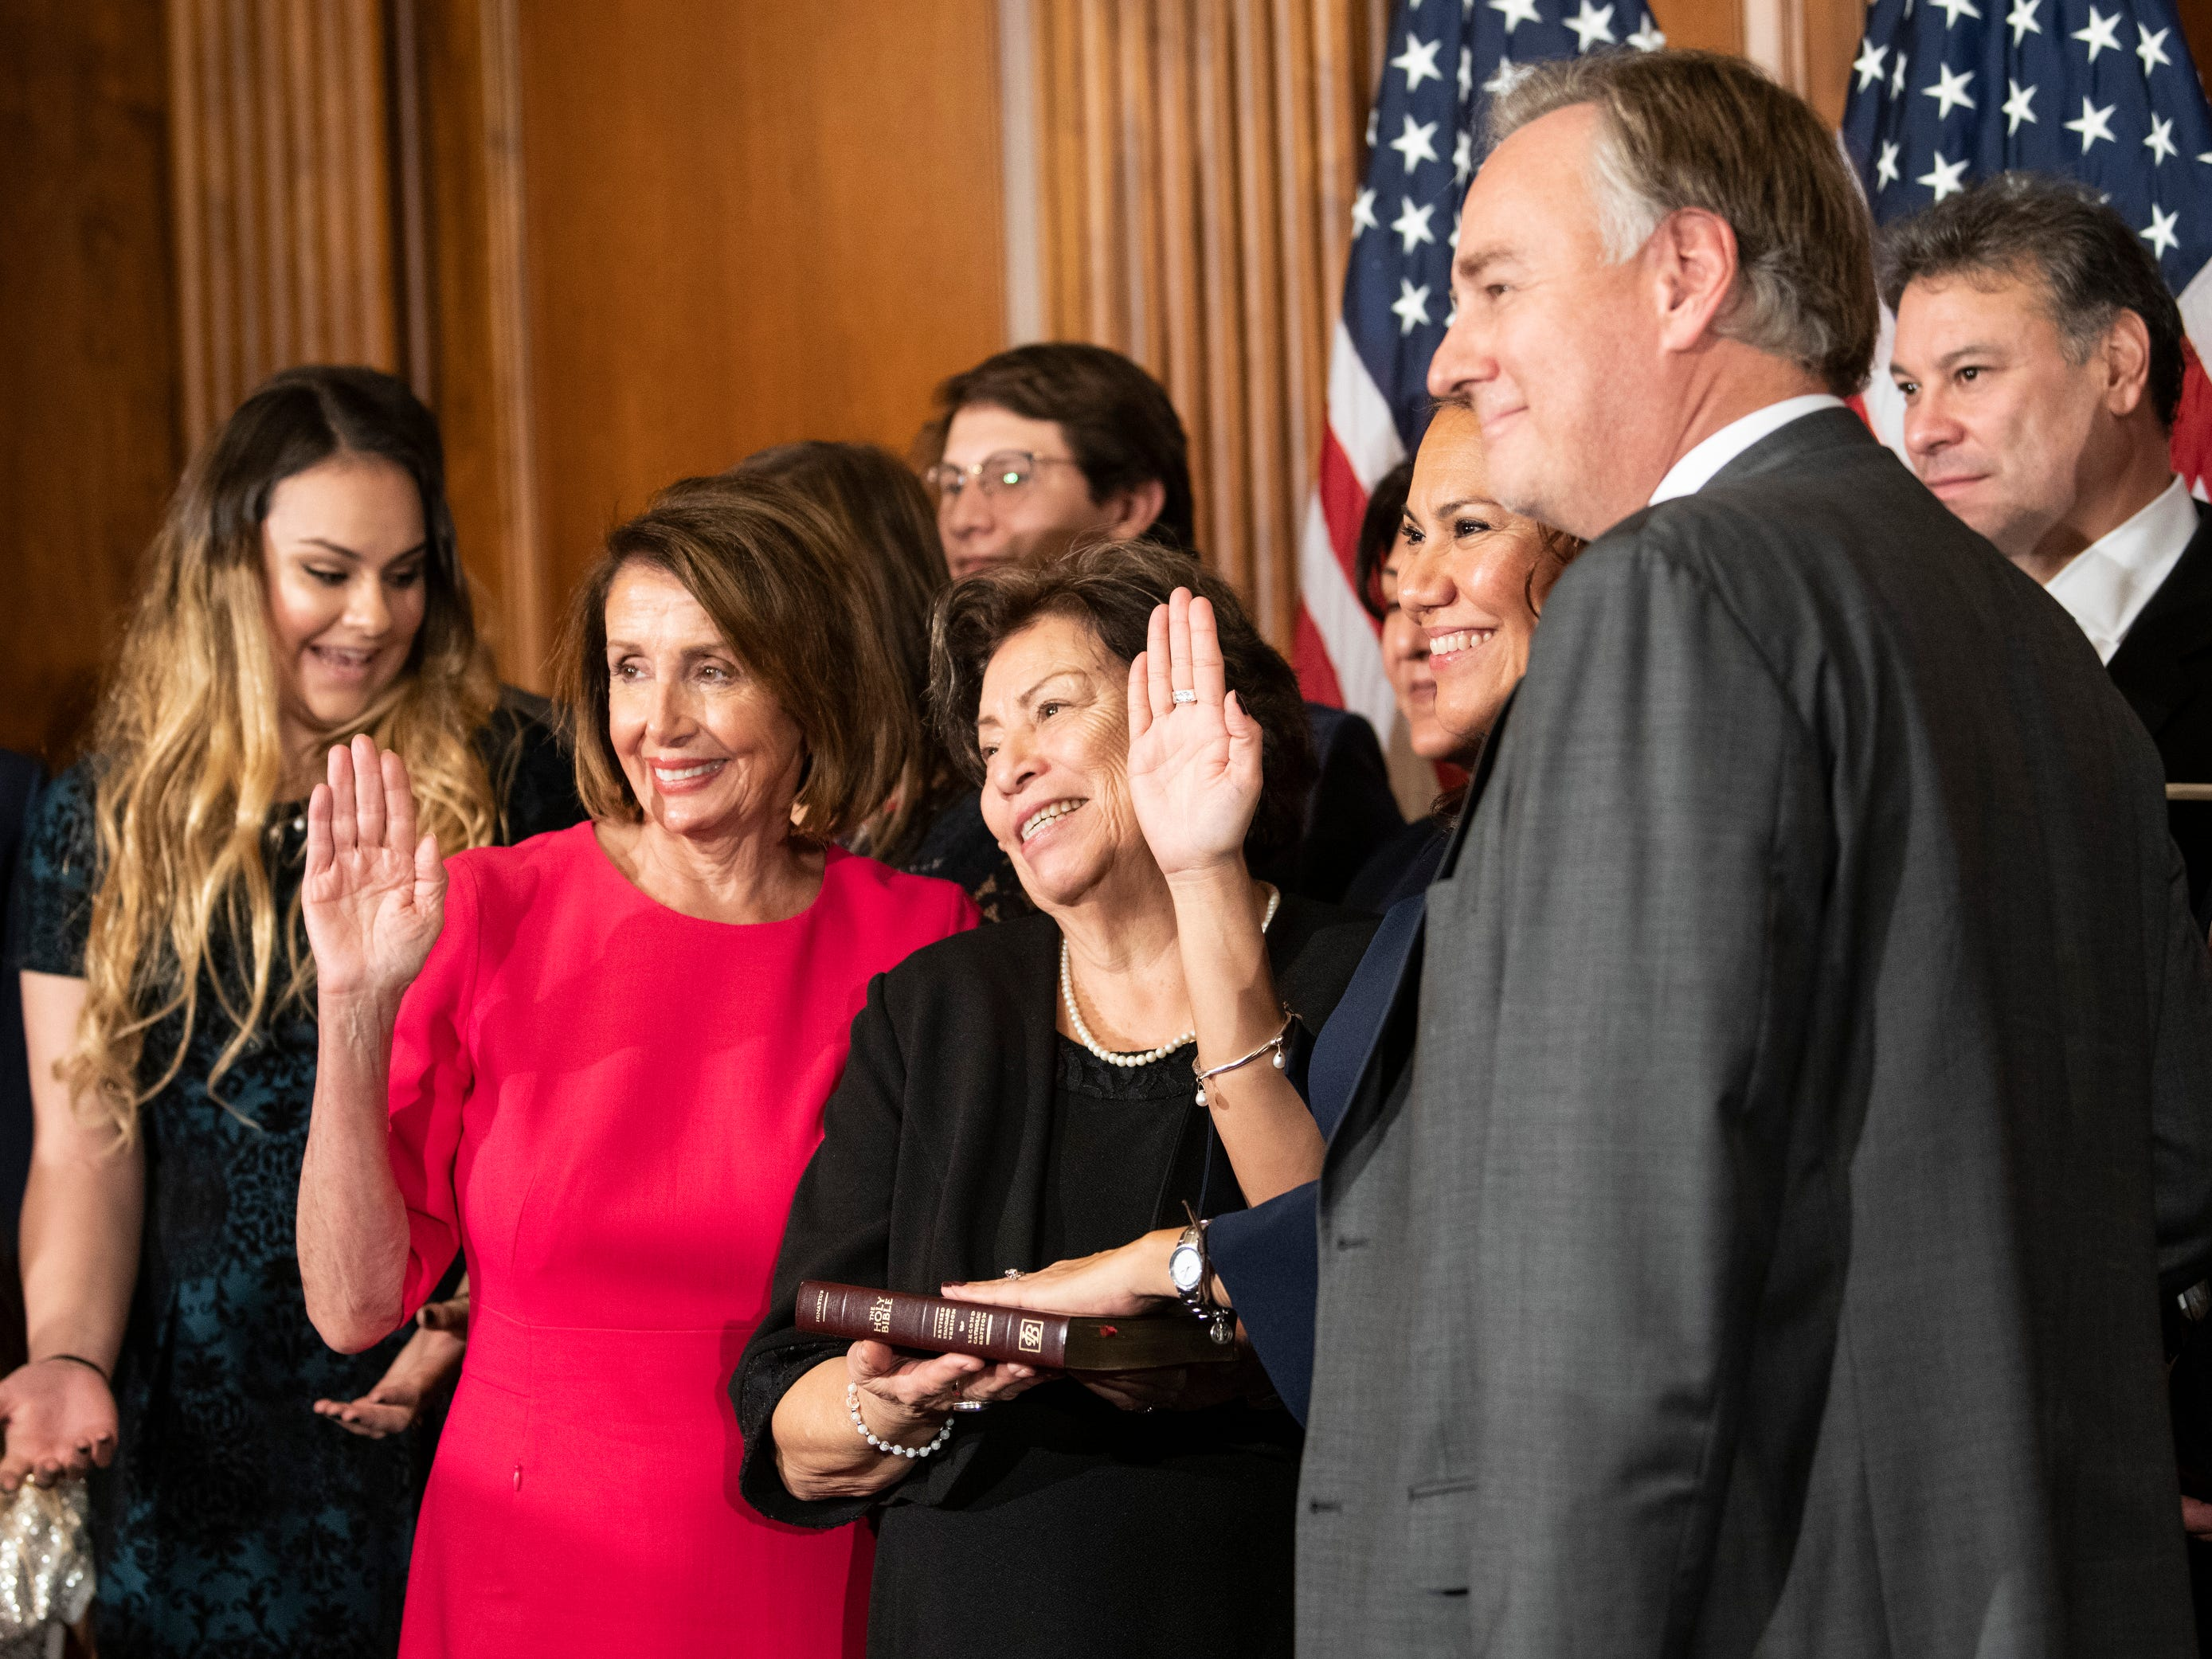 Rep. Veronica Escobar (D, TX) is surrounded by family while being sworn in by House Speaker Nancy Pelosi, on Jan. 3, 2019 in Washington D.C.